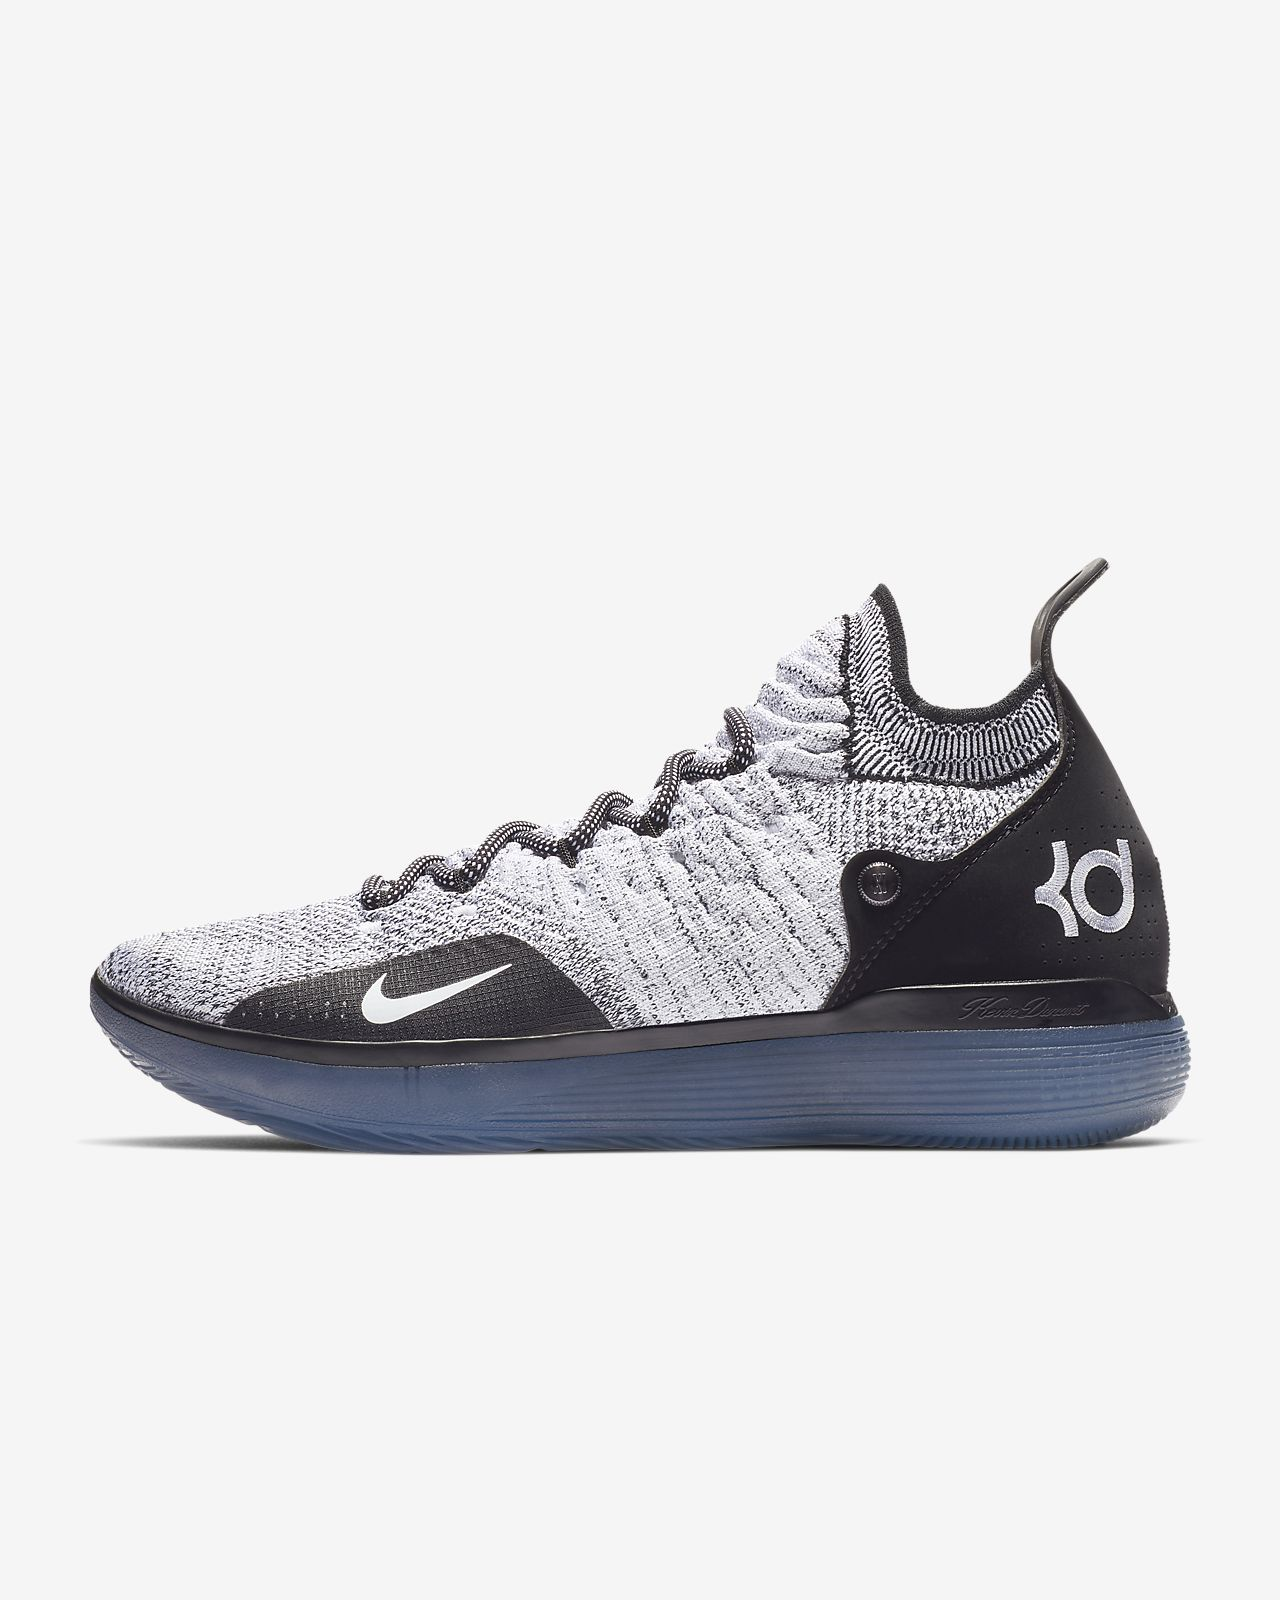 hot sales 606d8 6860b ... Nike Zoom KD11 Basketball Shoe